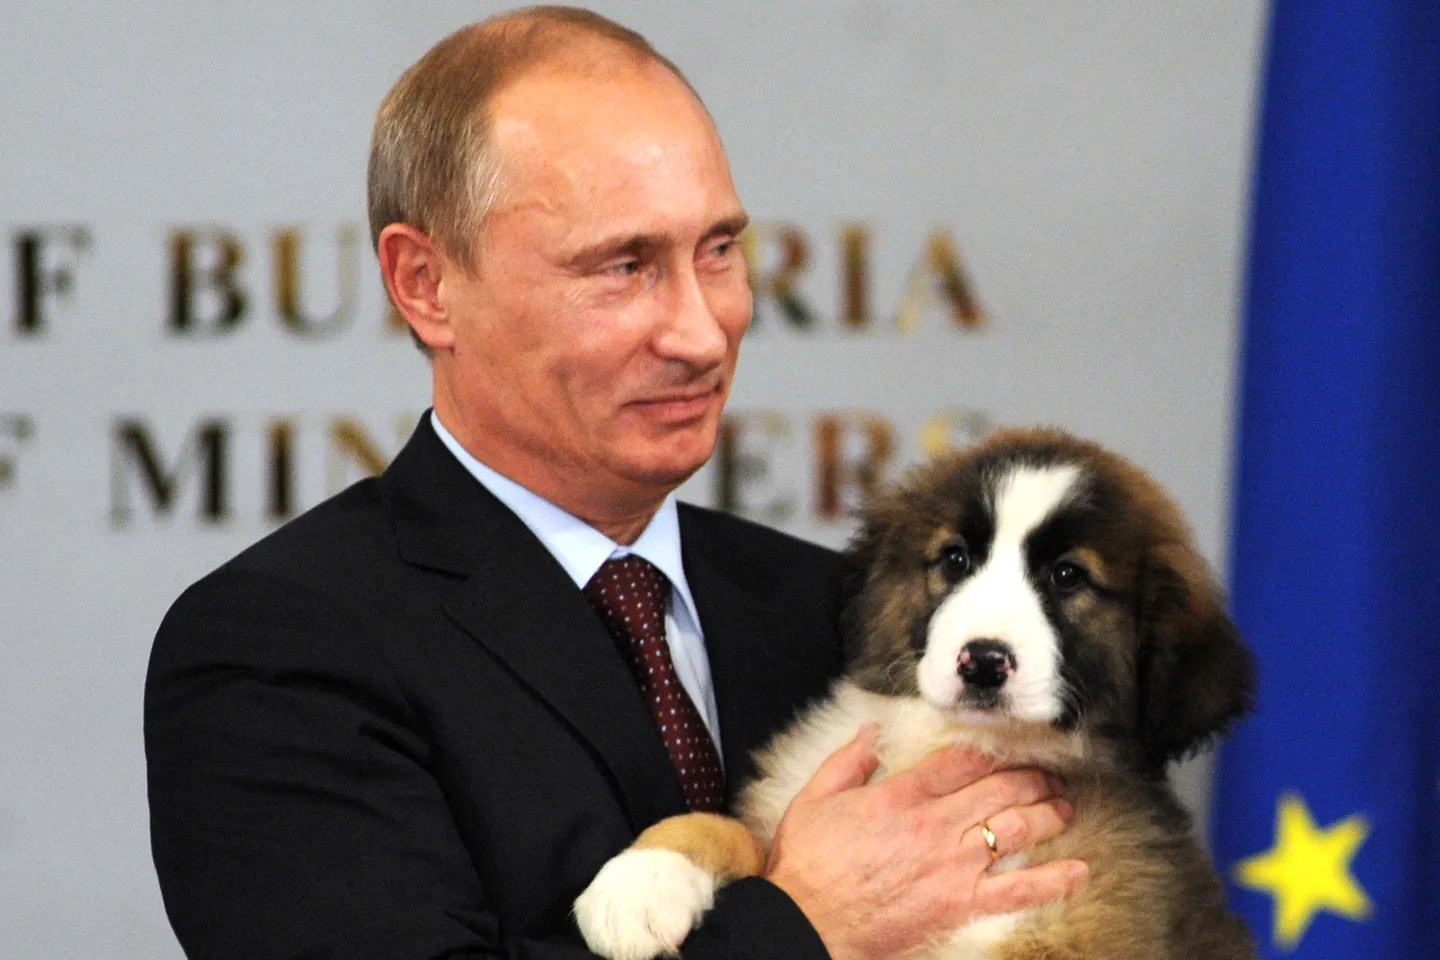 https://i0.wp.com/media.vanityfair.com/photos/553e4307db753b82389c725f/master/pass/vladimir-putin-dog-george-w-bush.jpg